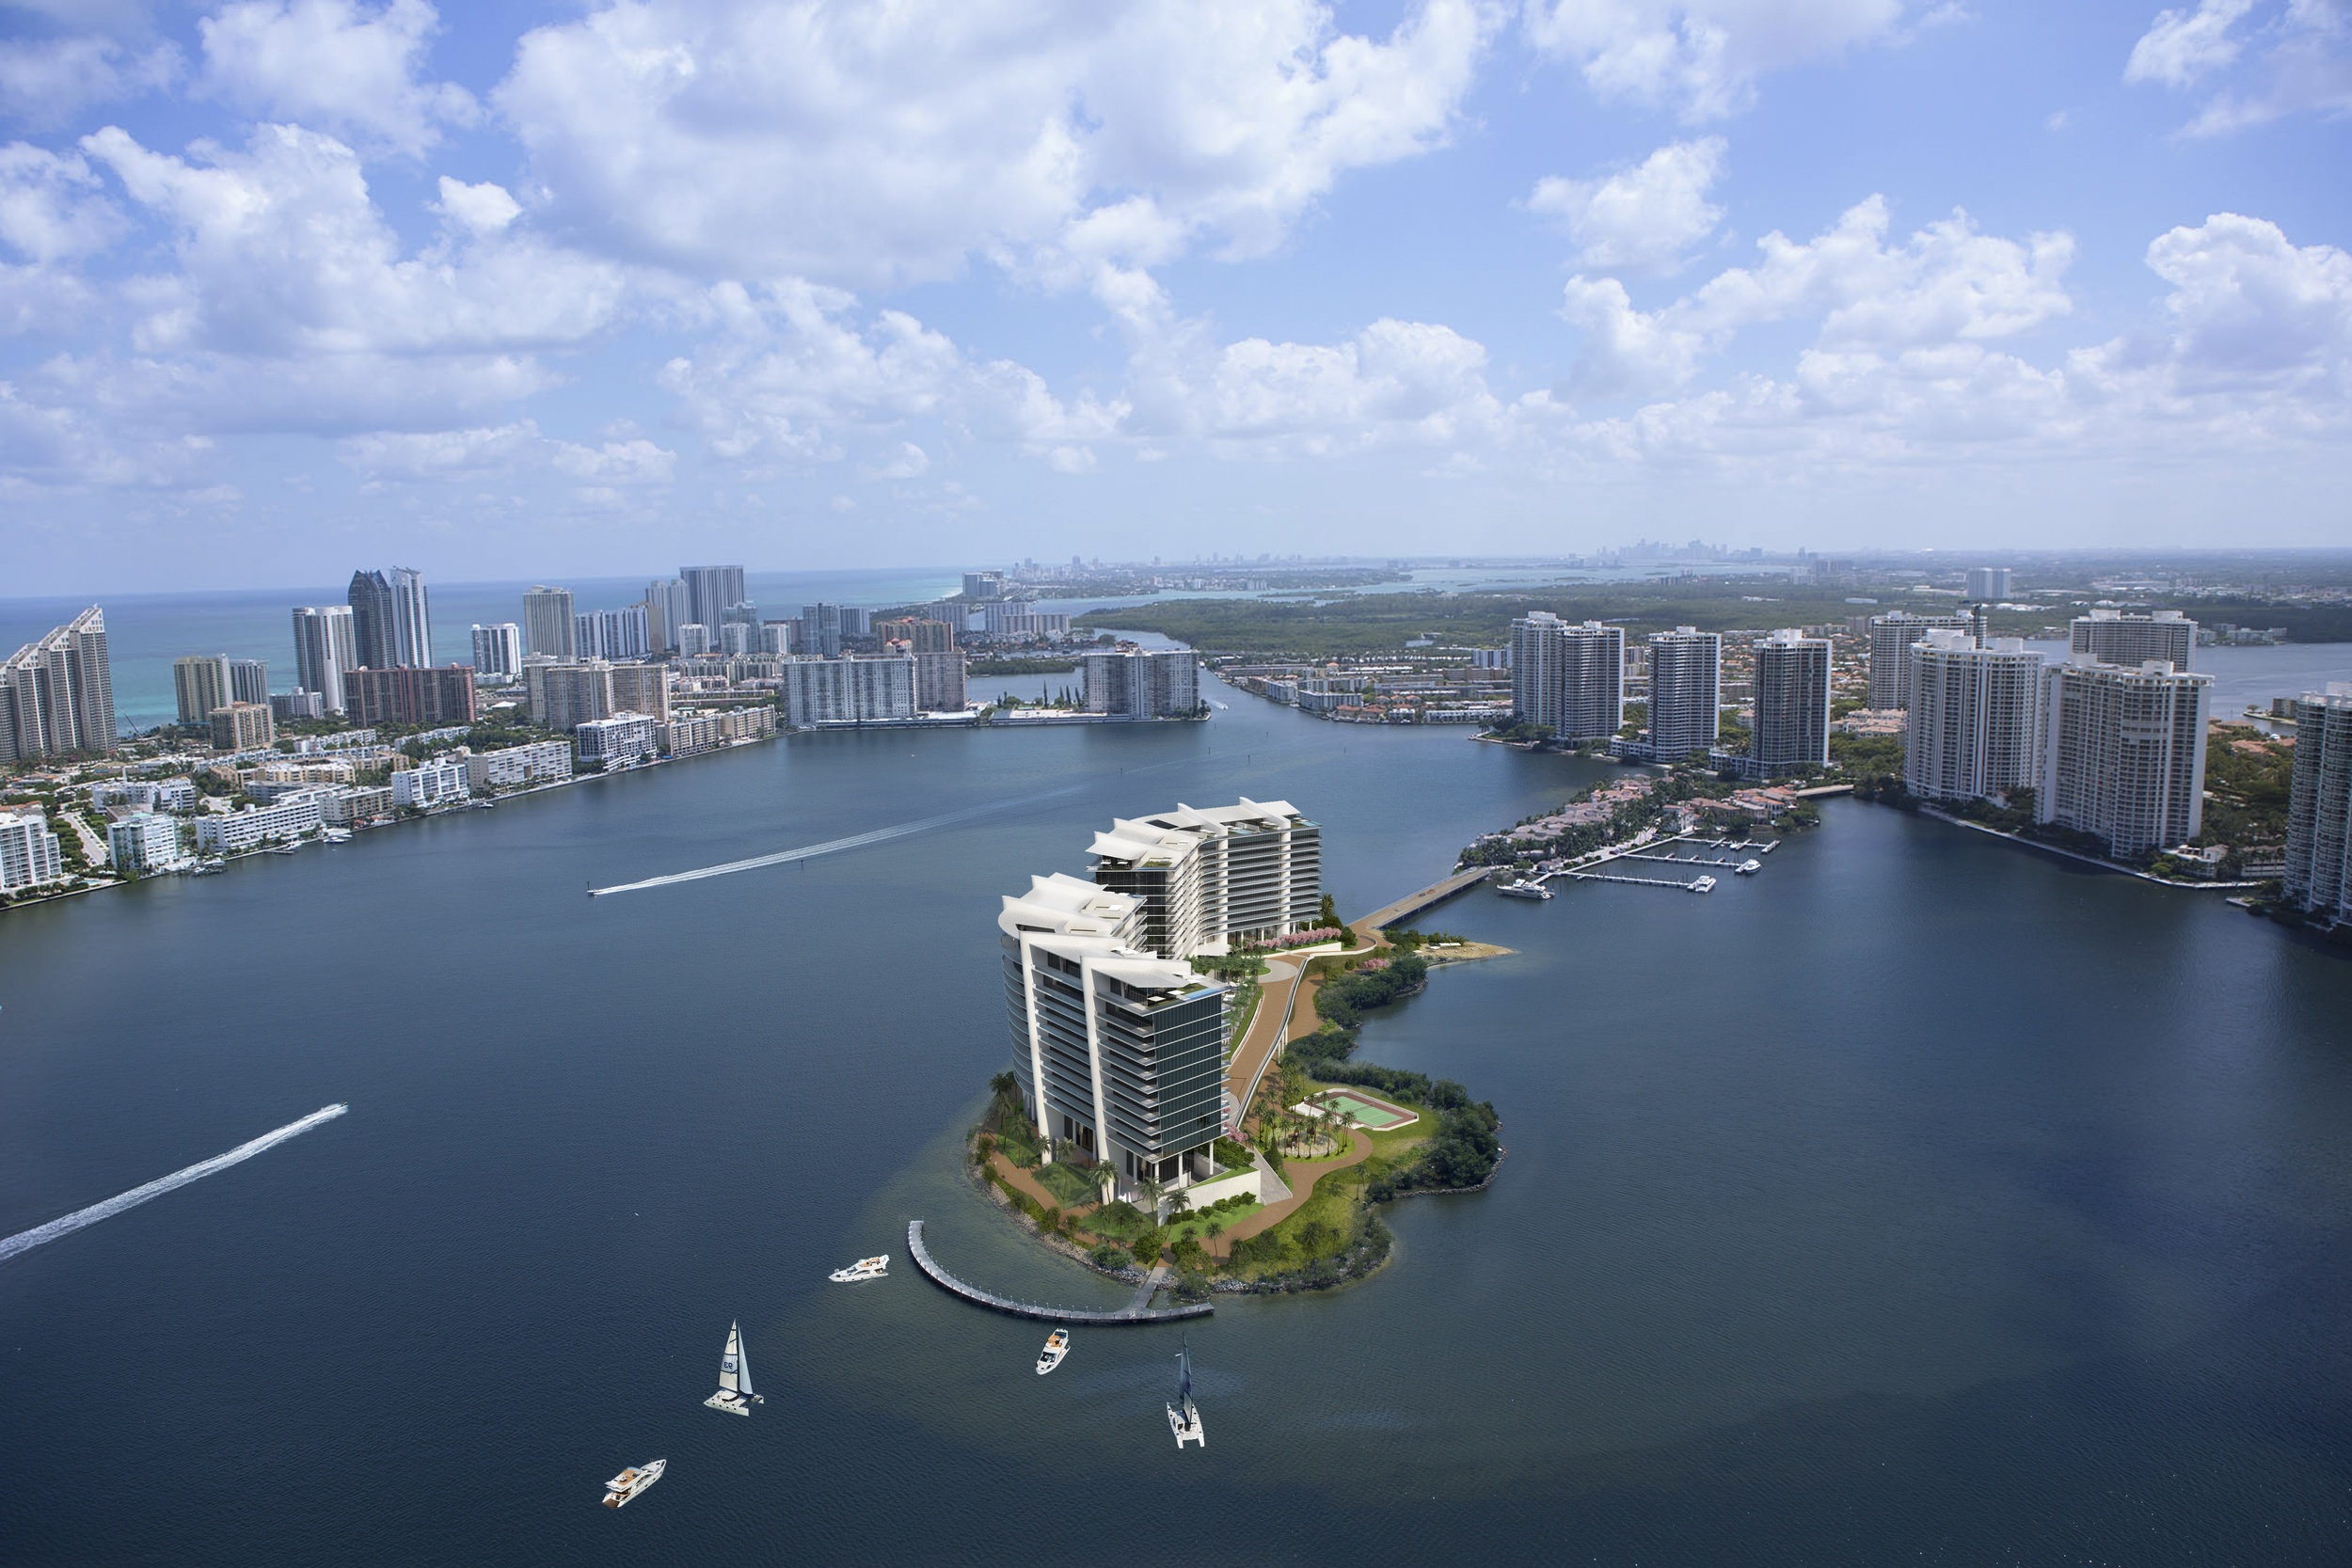 Img18192014_165181PRIVE_EXTERIOR_FROM_NORTH.jpg.jpg